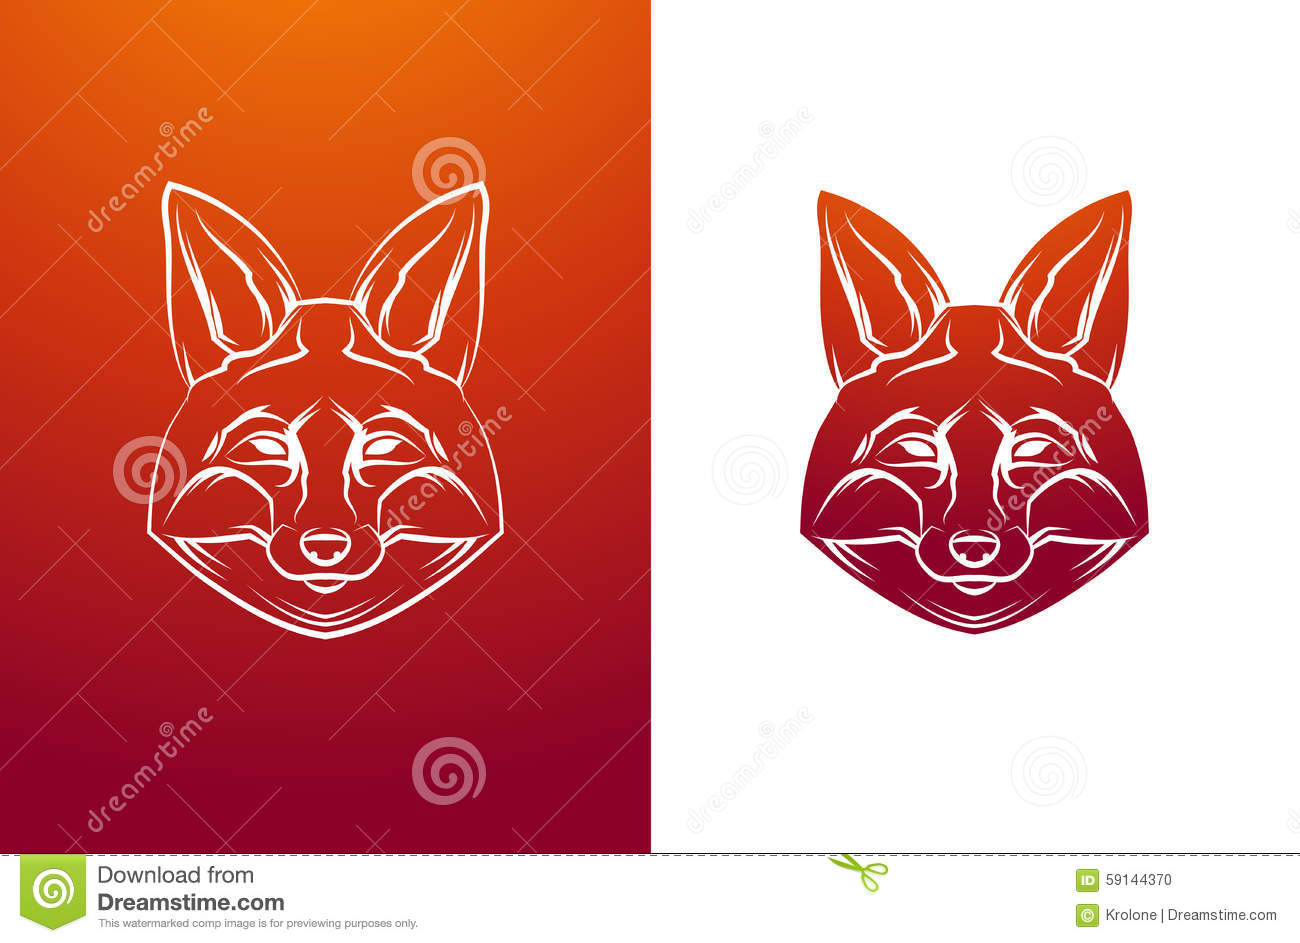 Fox PNG Images Download 3507 PNG Resources with